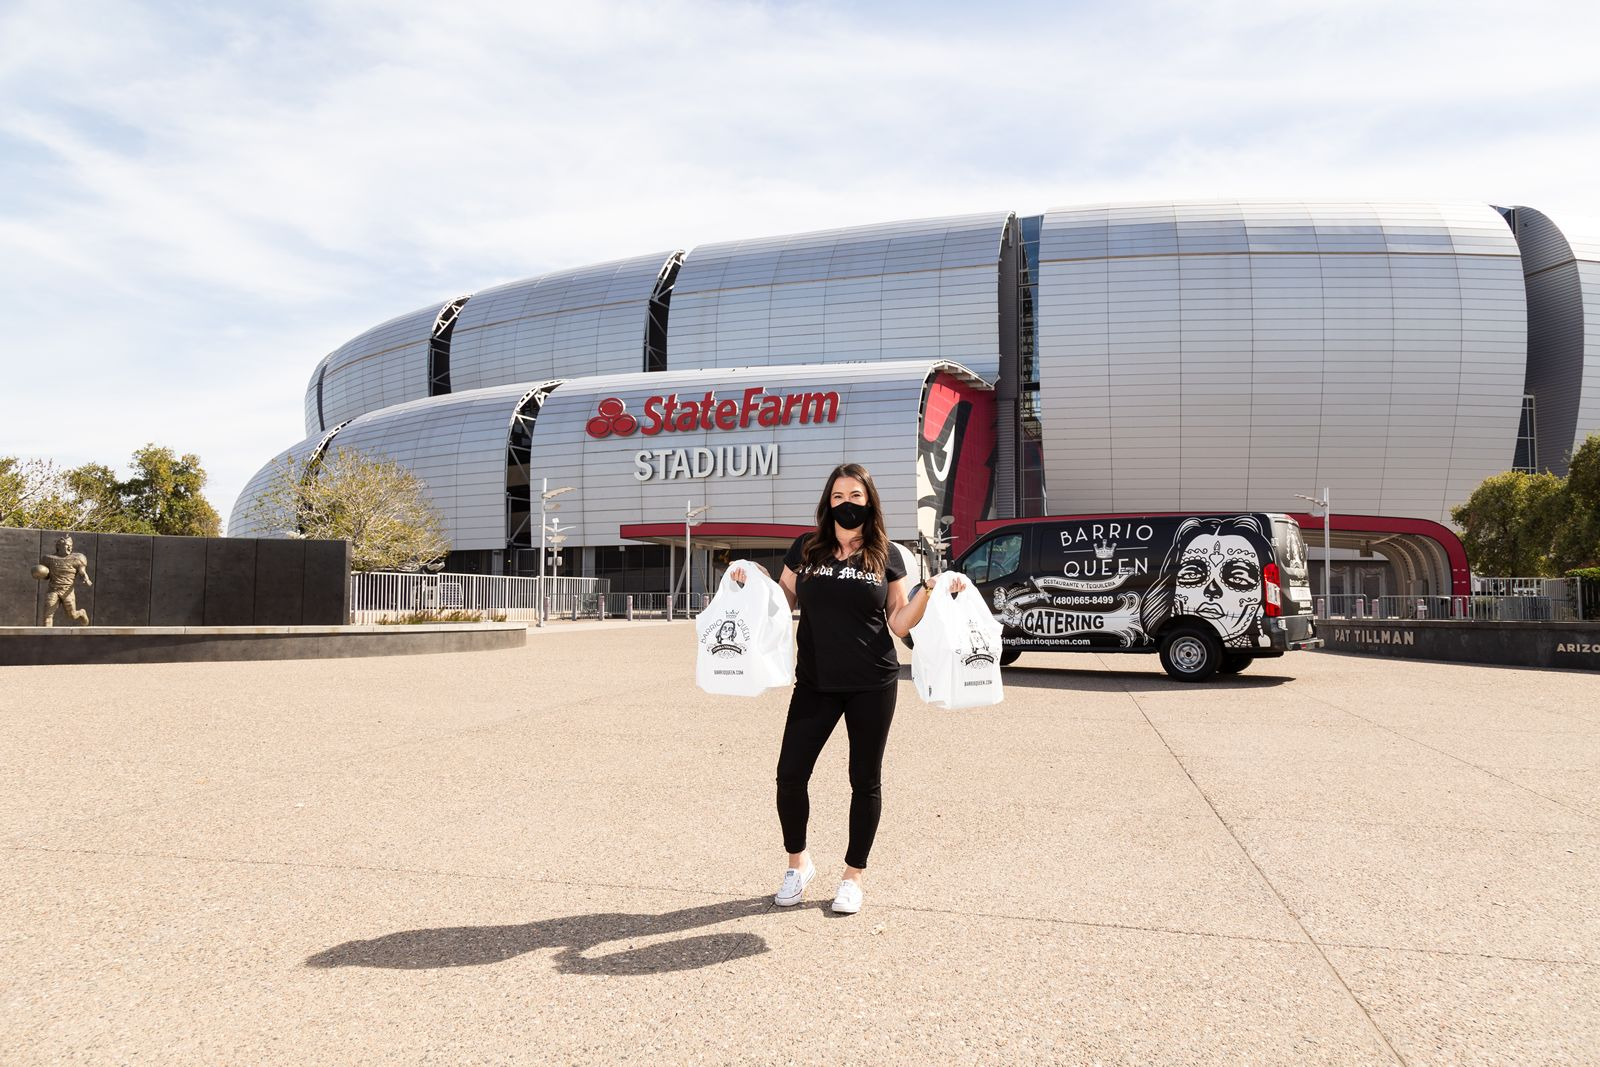 Barrio Queen Continues Helping Amid Pandemic by Donating More Than 400+ Meals at State Farm Stadium